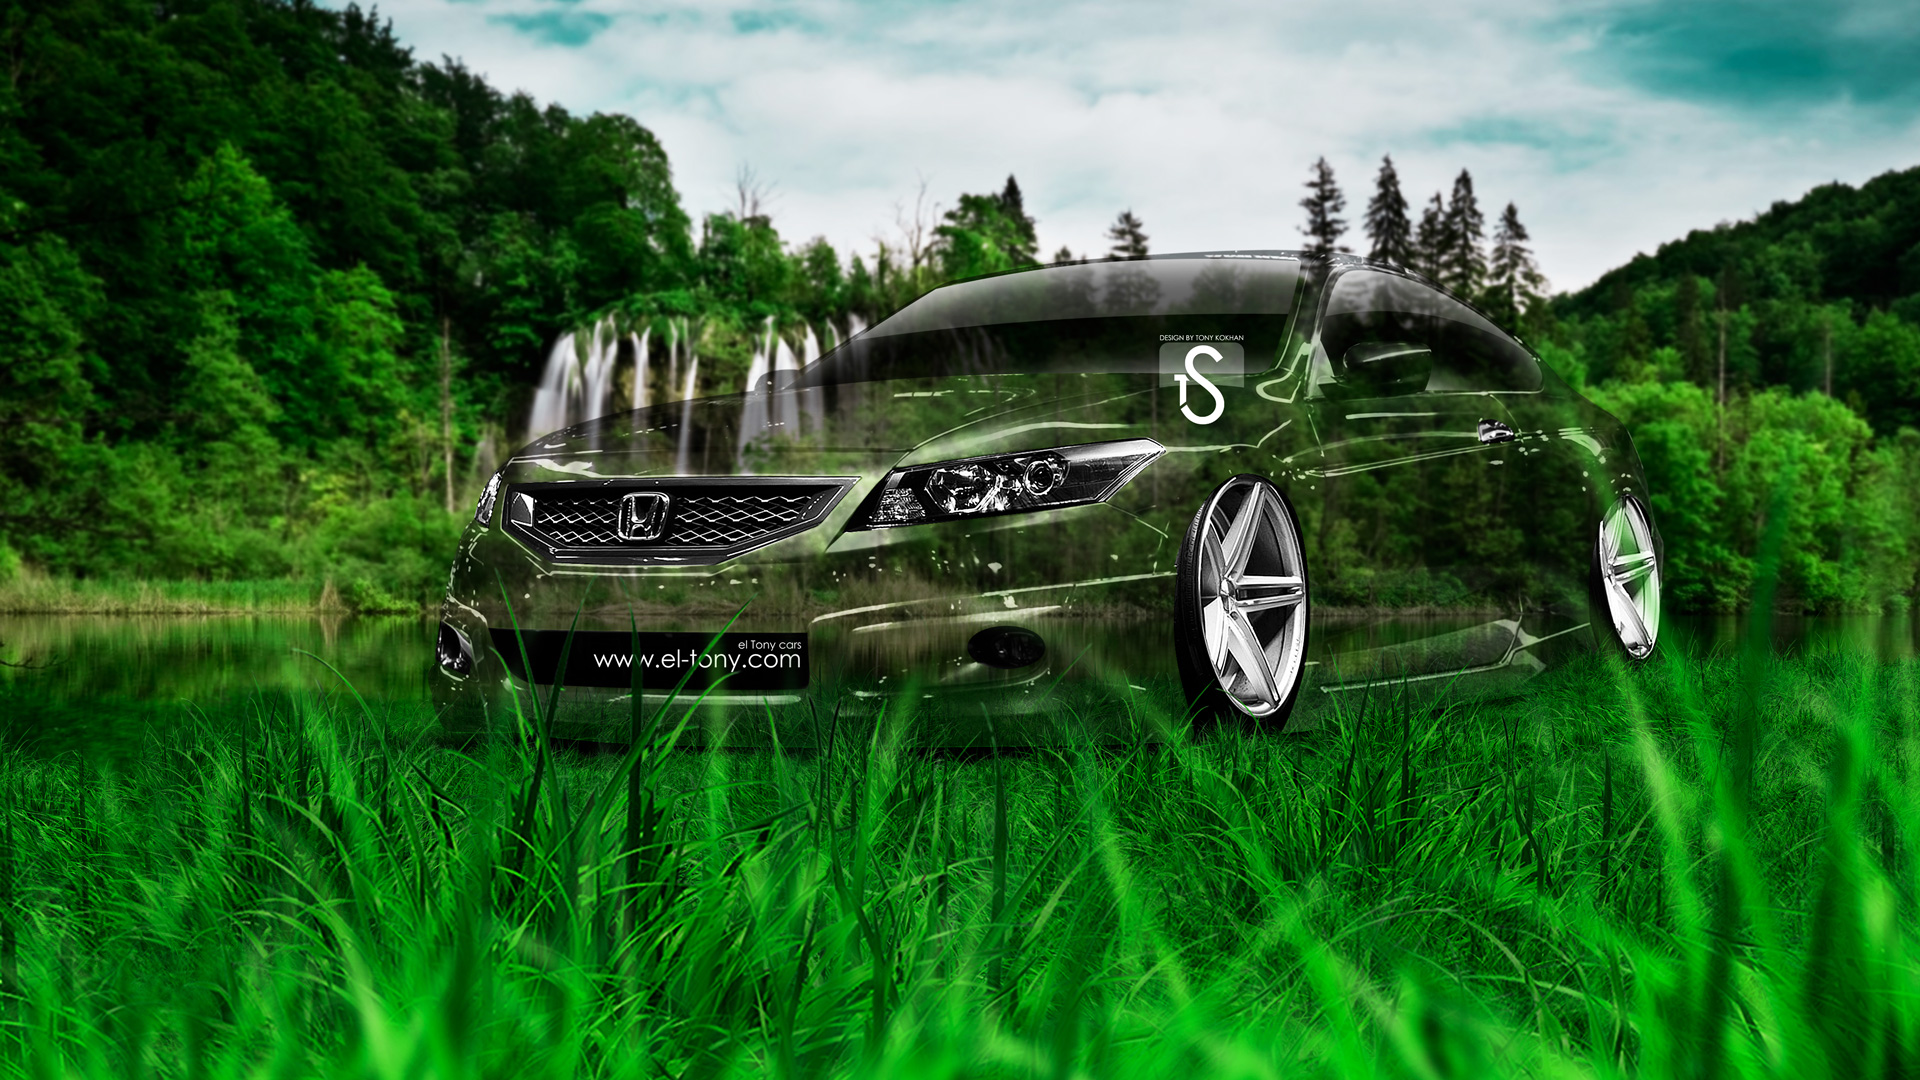 Merveilleux Honda Accord Coupe JDM Crystal Nature Car 2014